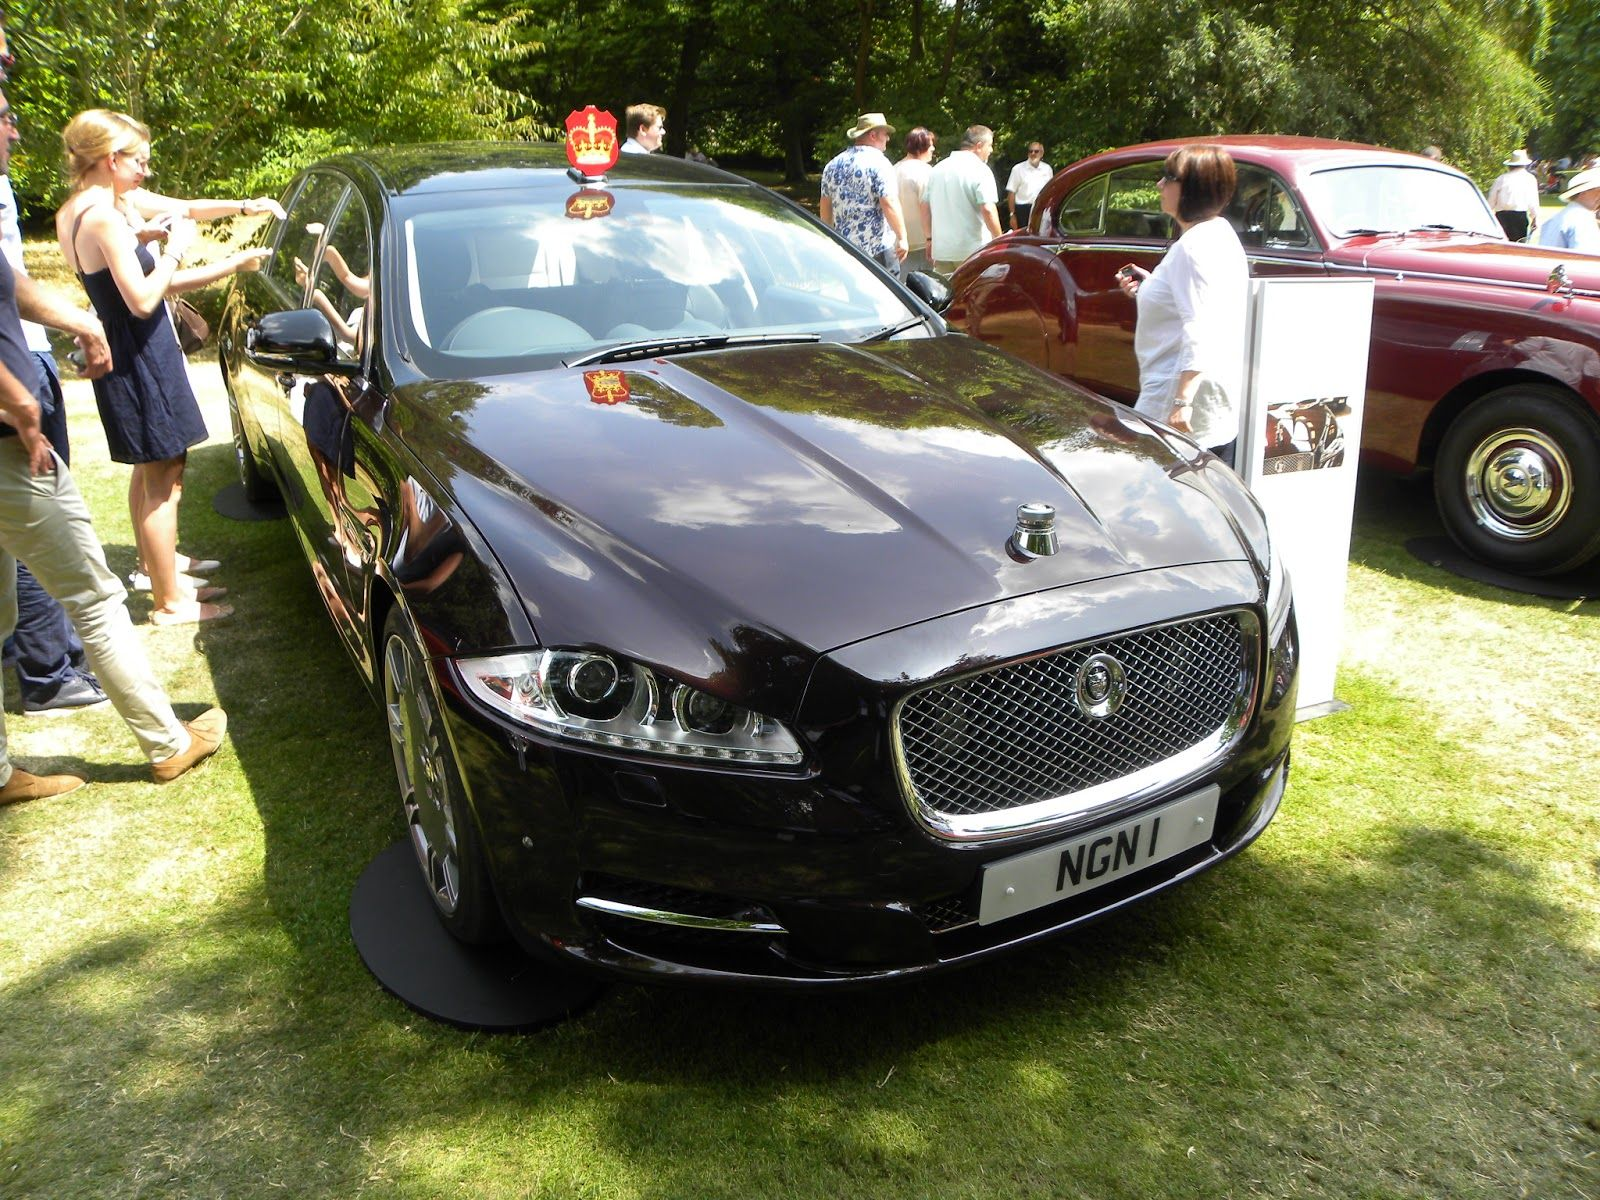 Representing The Present Was Another Royal Vehicle One Of Two Jaguar Xj Semi State Limousines Which Were Presented To The Queen Jaguar Xj Limousine Vehicles